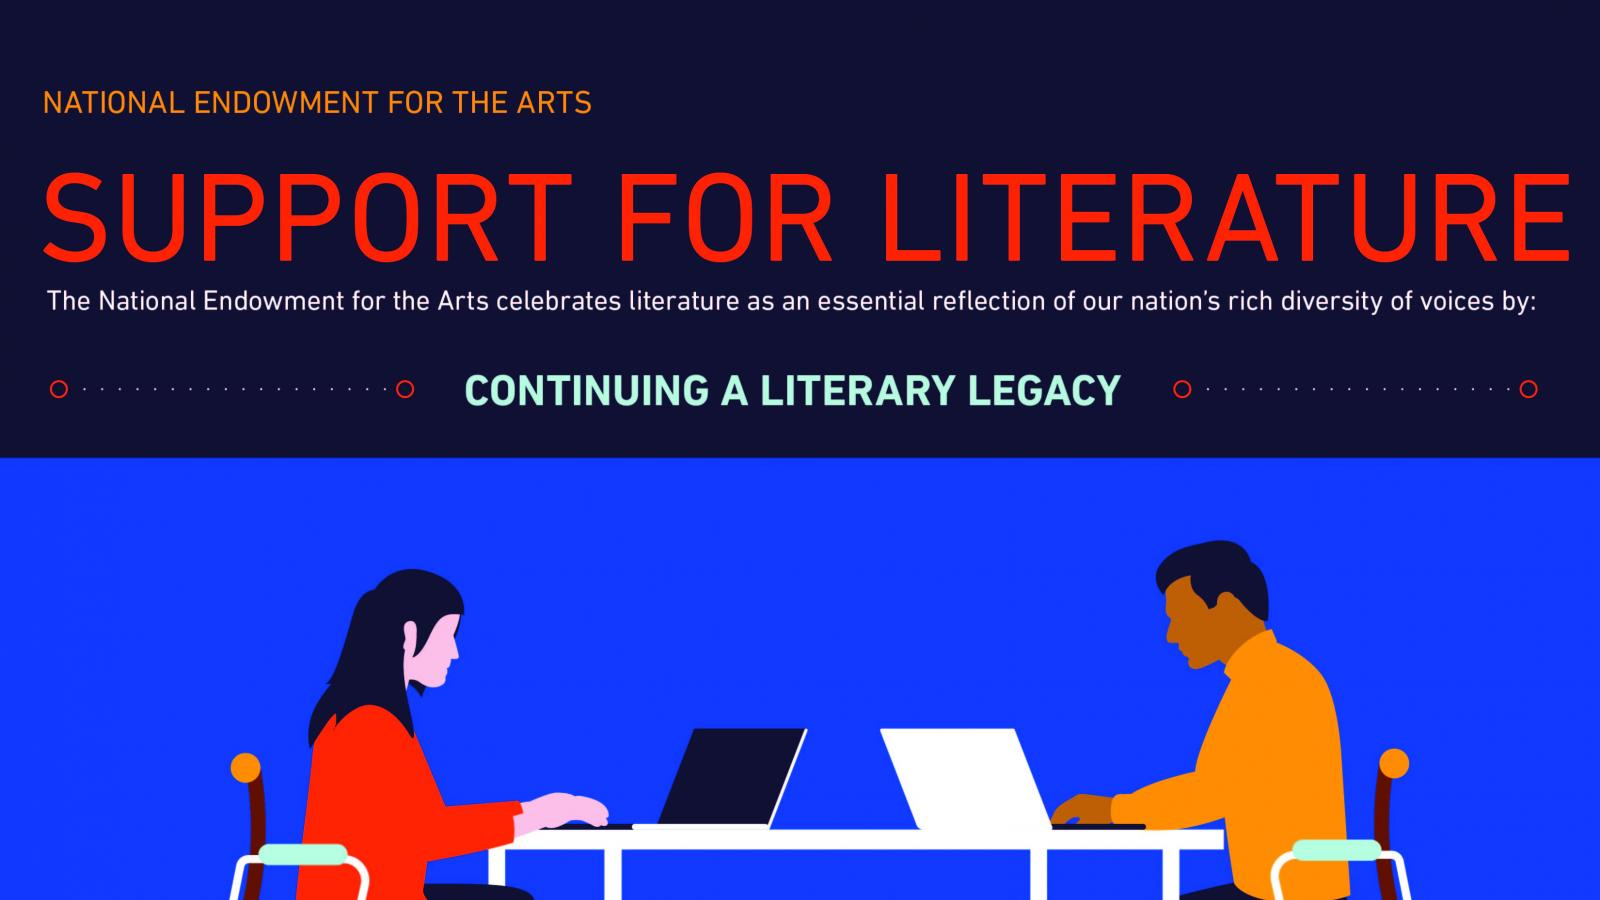 Infographic showing support for literature fellowships